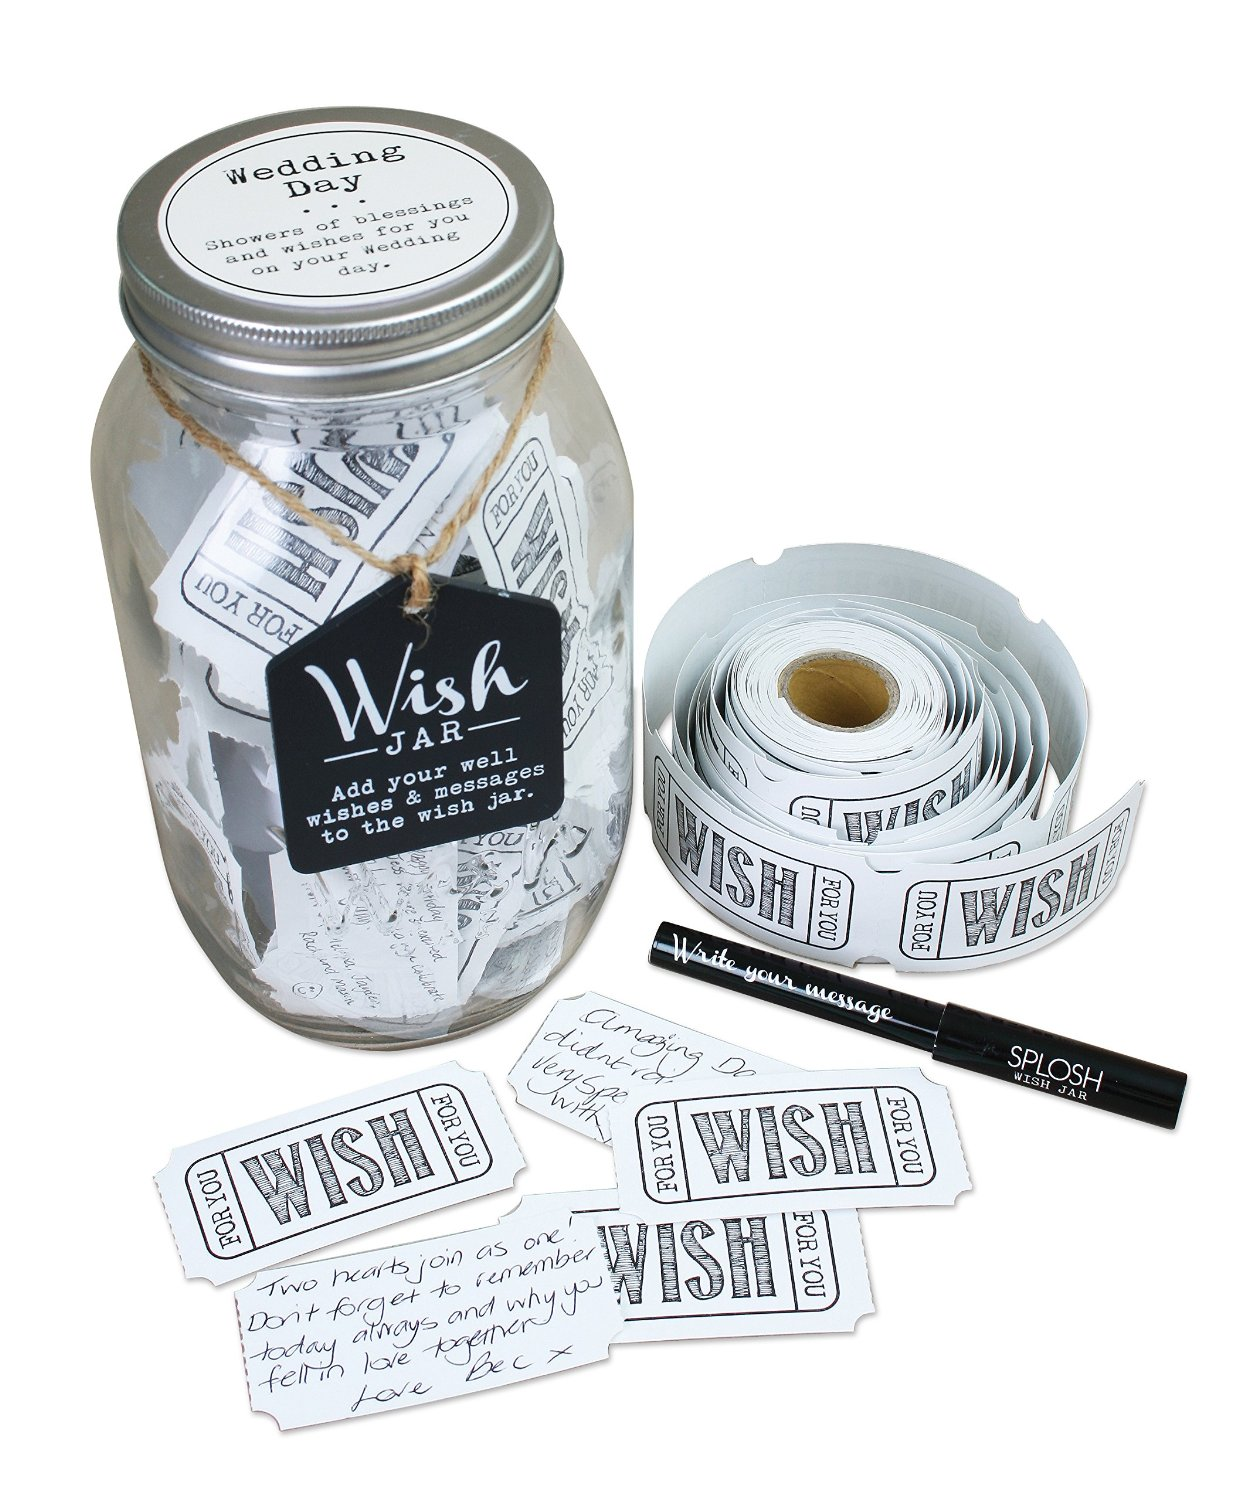 Splosh Wedding Wish Jar Gift Idea Gifts Love Kates